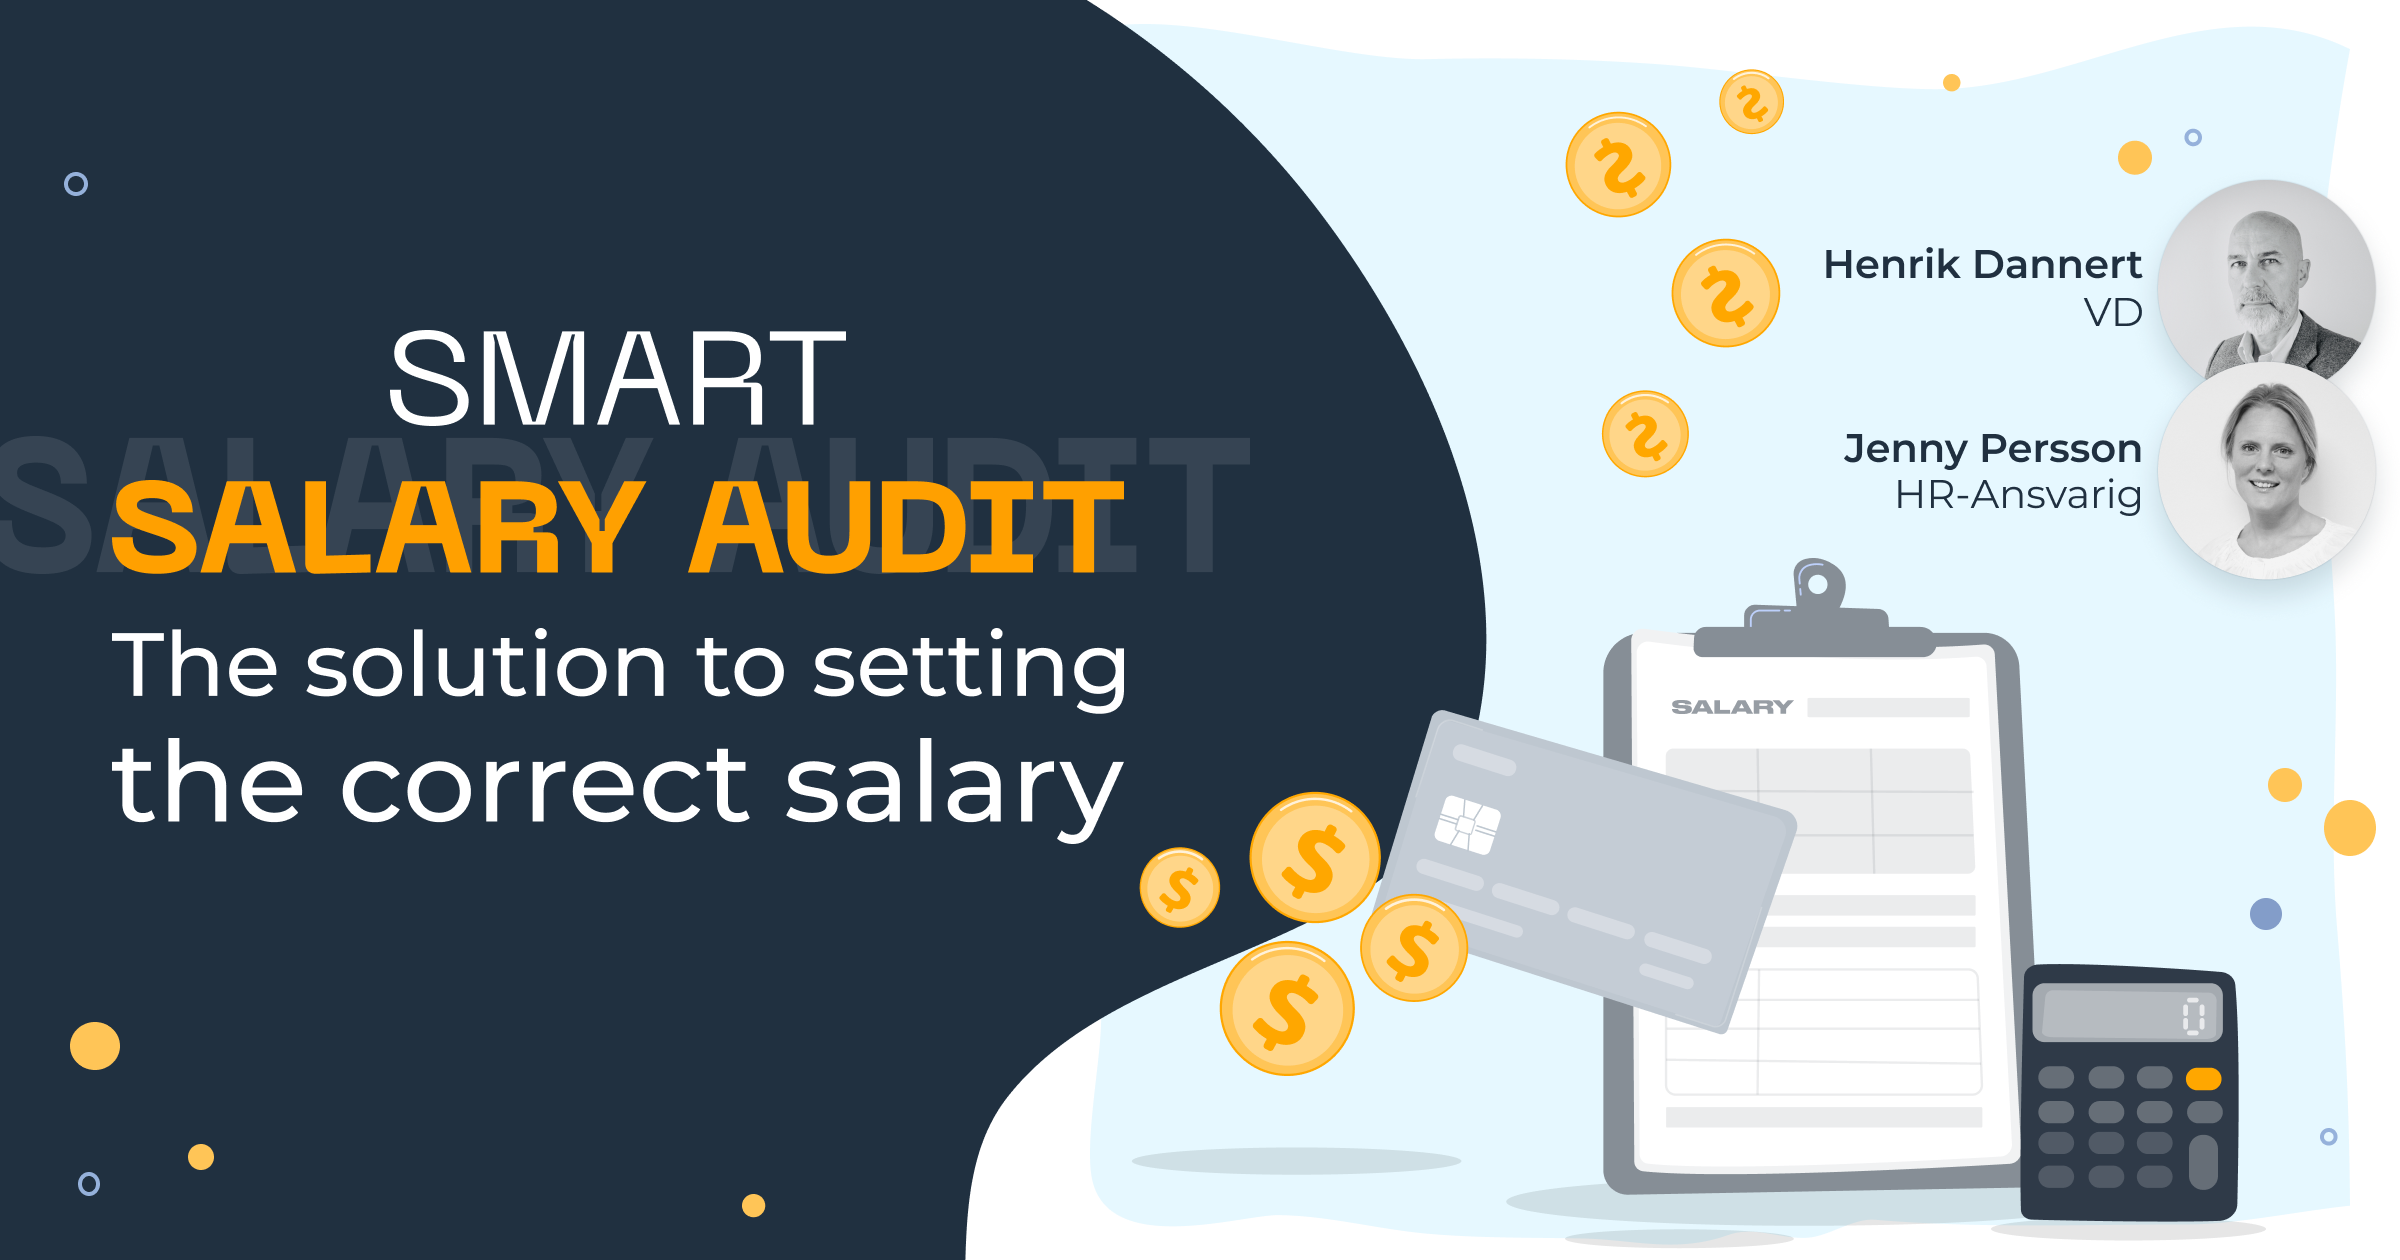 SMART Salary Audit - The Solution to Setting the Correct Salary